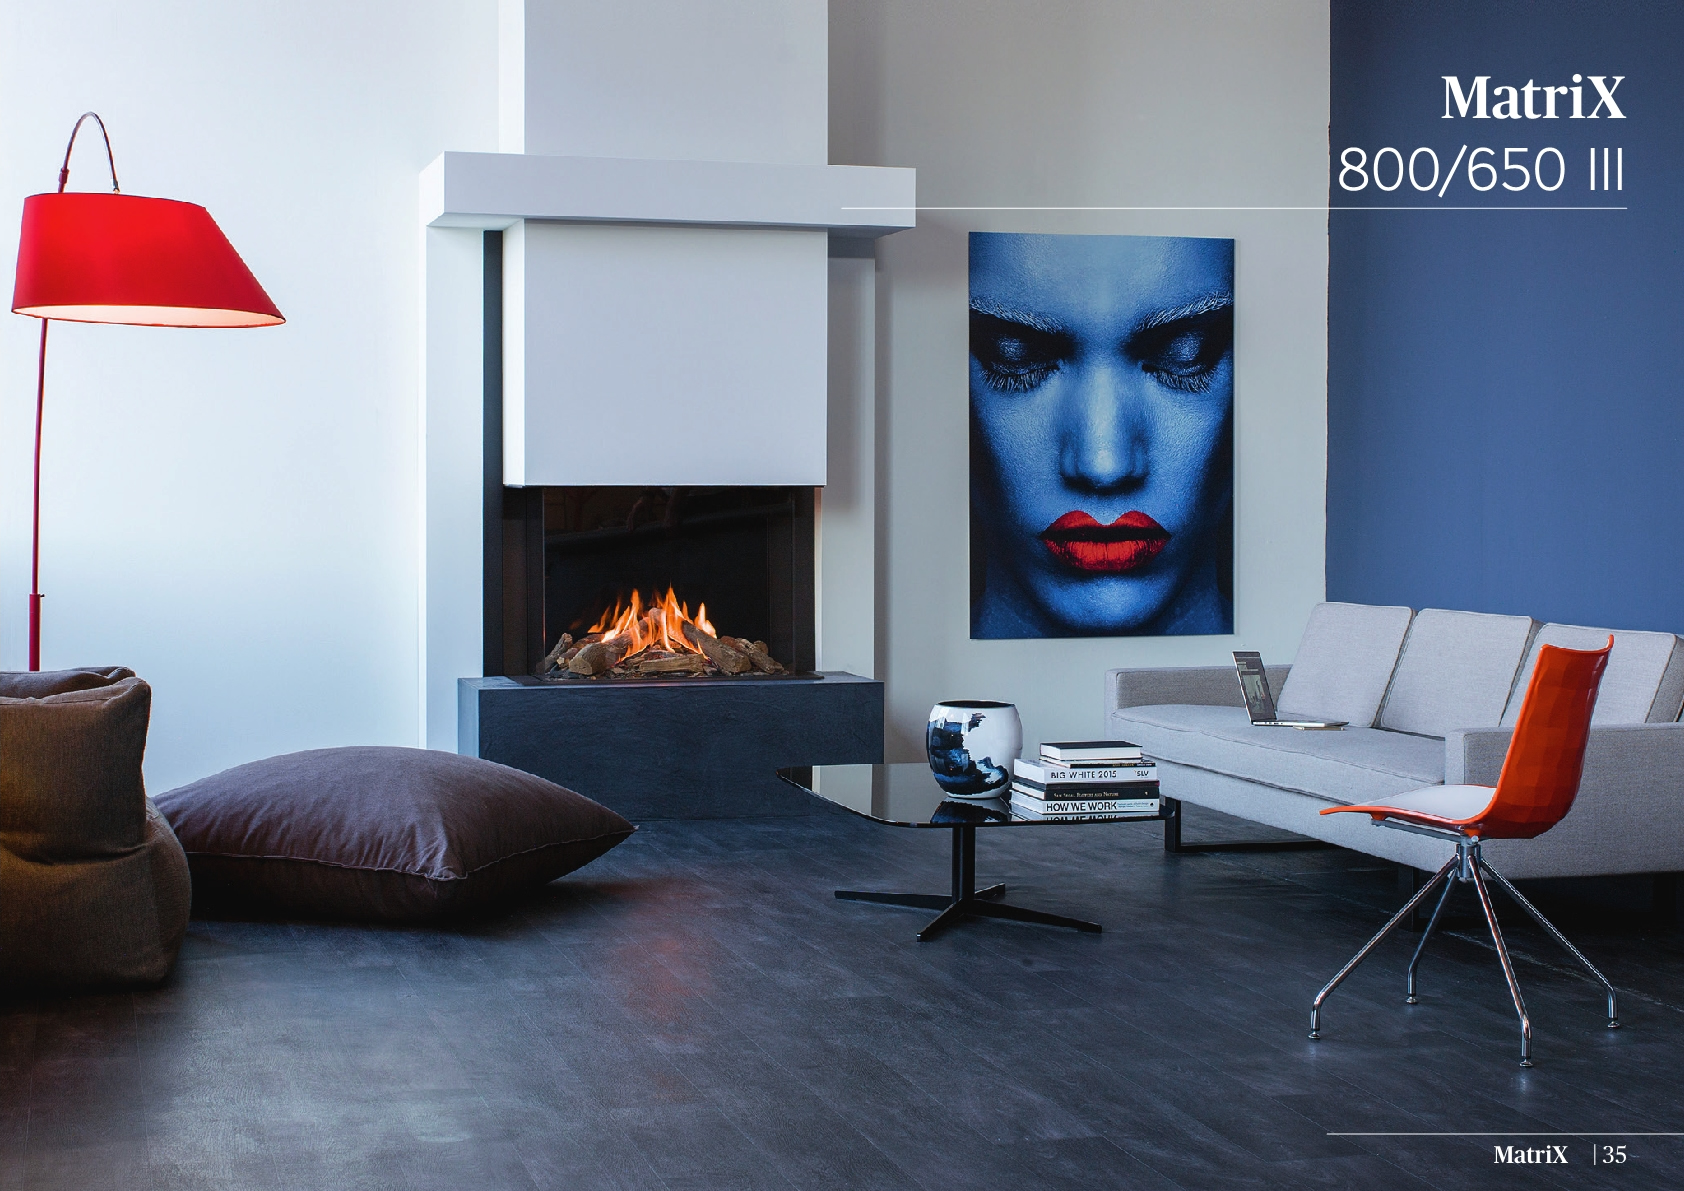 Faber Natural Gas Fireplaces - Matrix 800 / 650 III